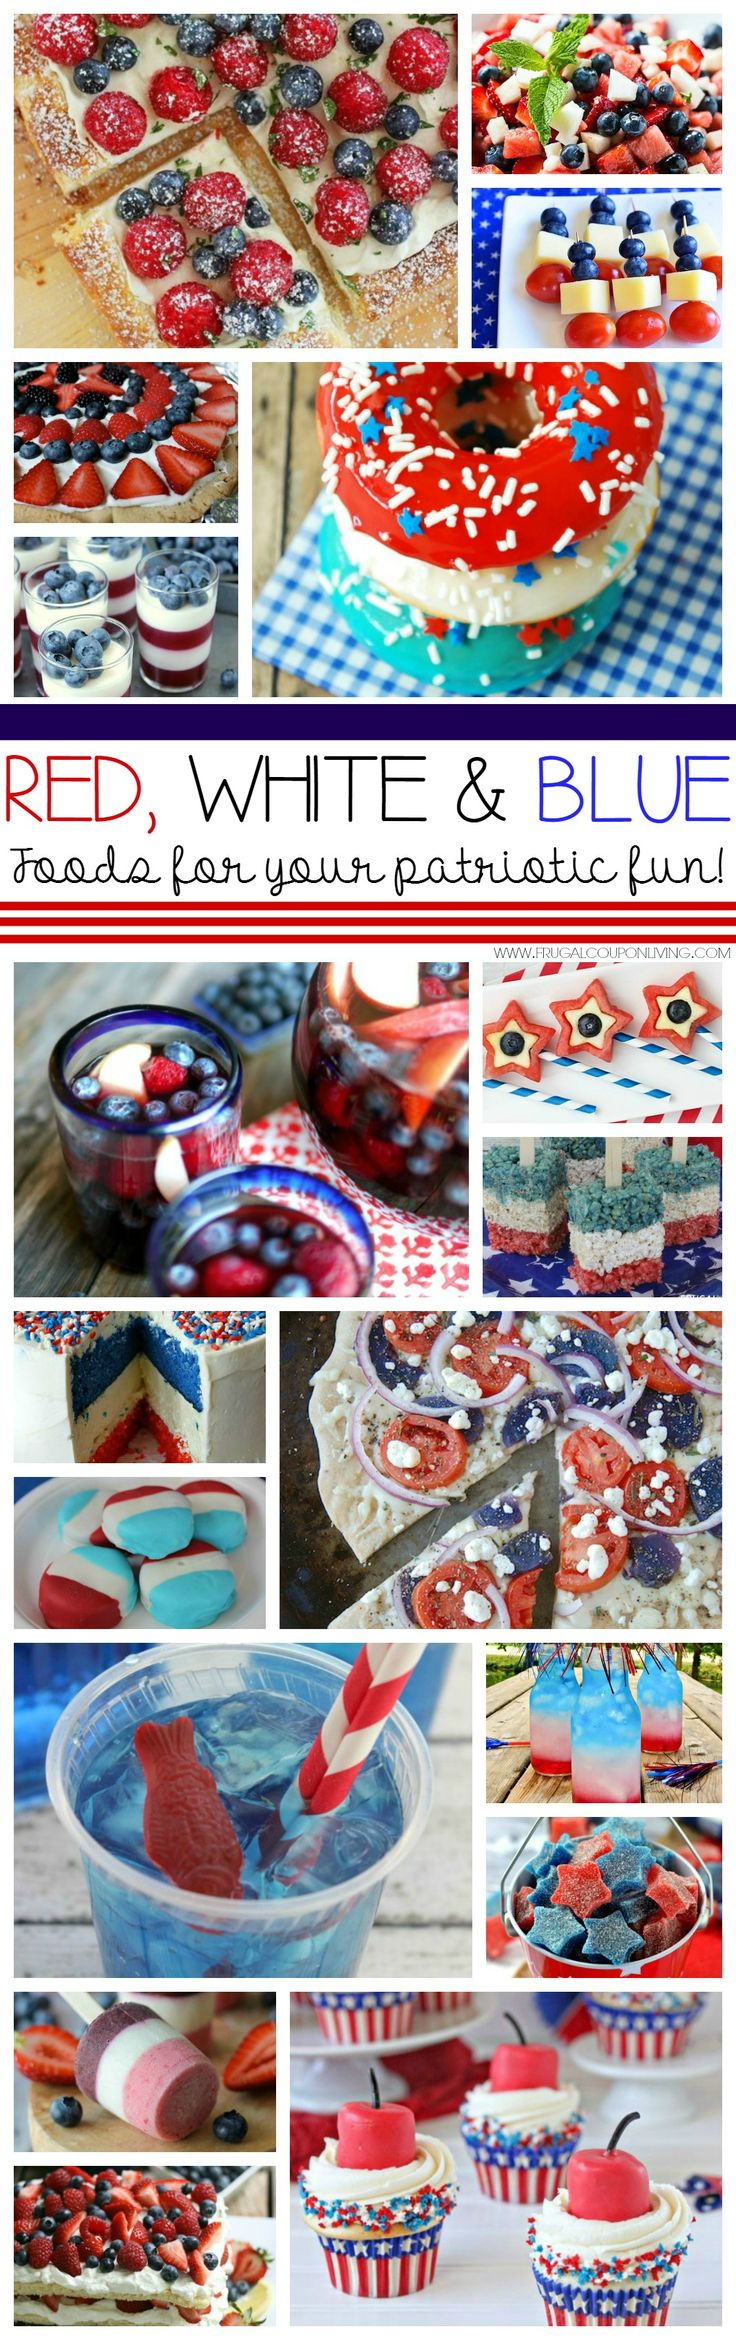 Red White and Blue Recipes for Your July 4th party ideas. Round-up from some of the best bloggers on the web on Frugal Coupon Living. Red white and blue food for an American Party.